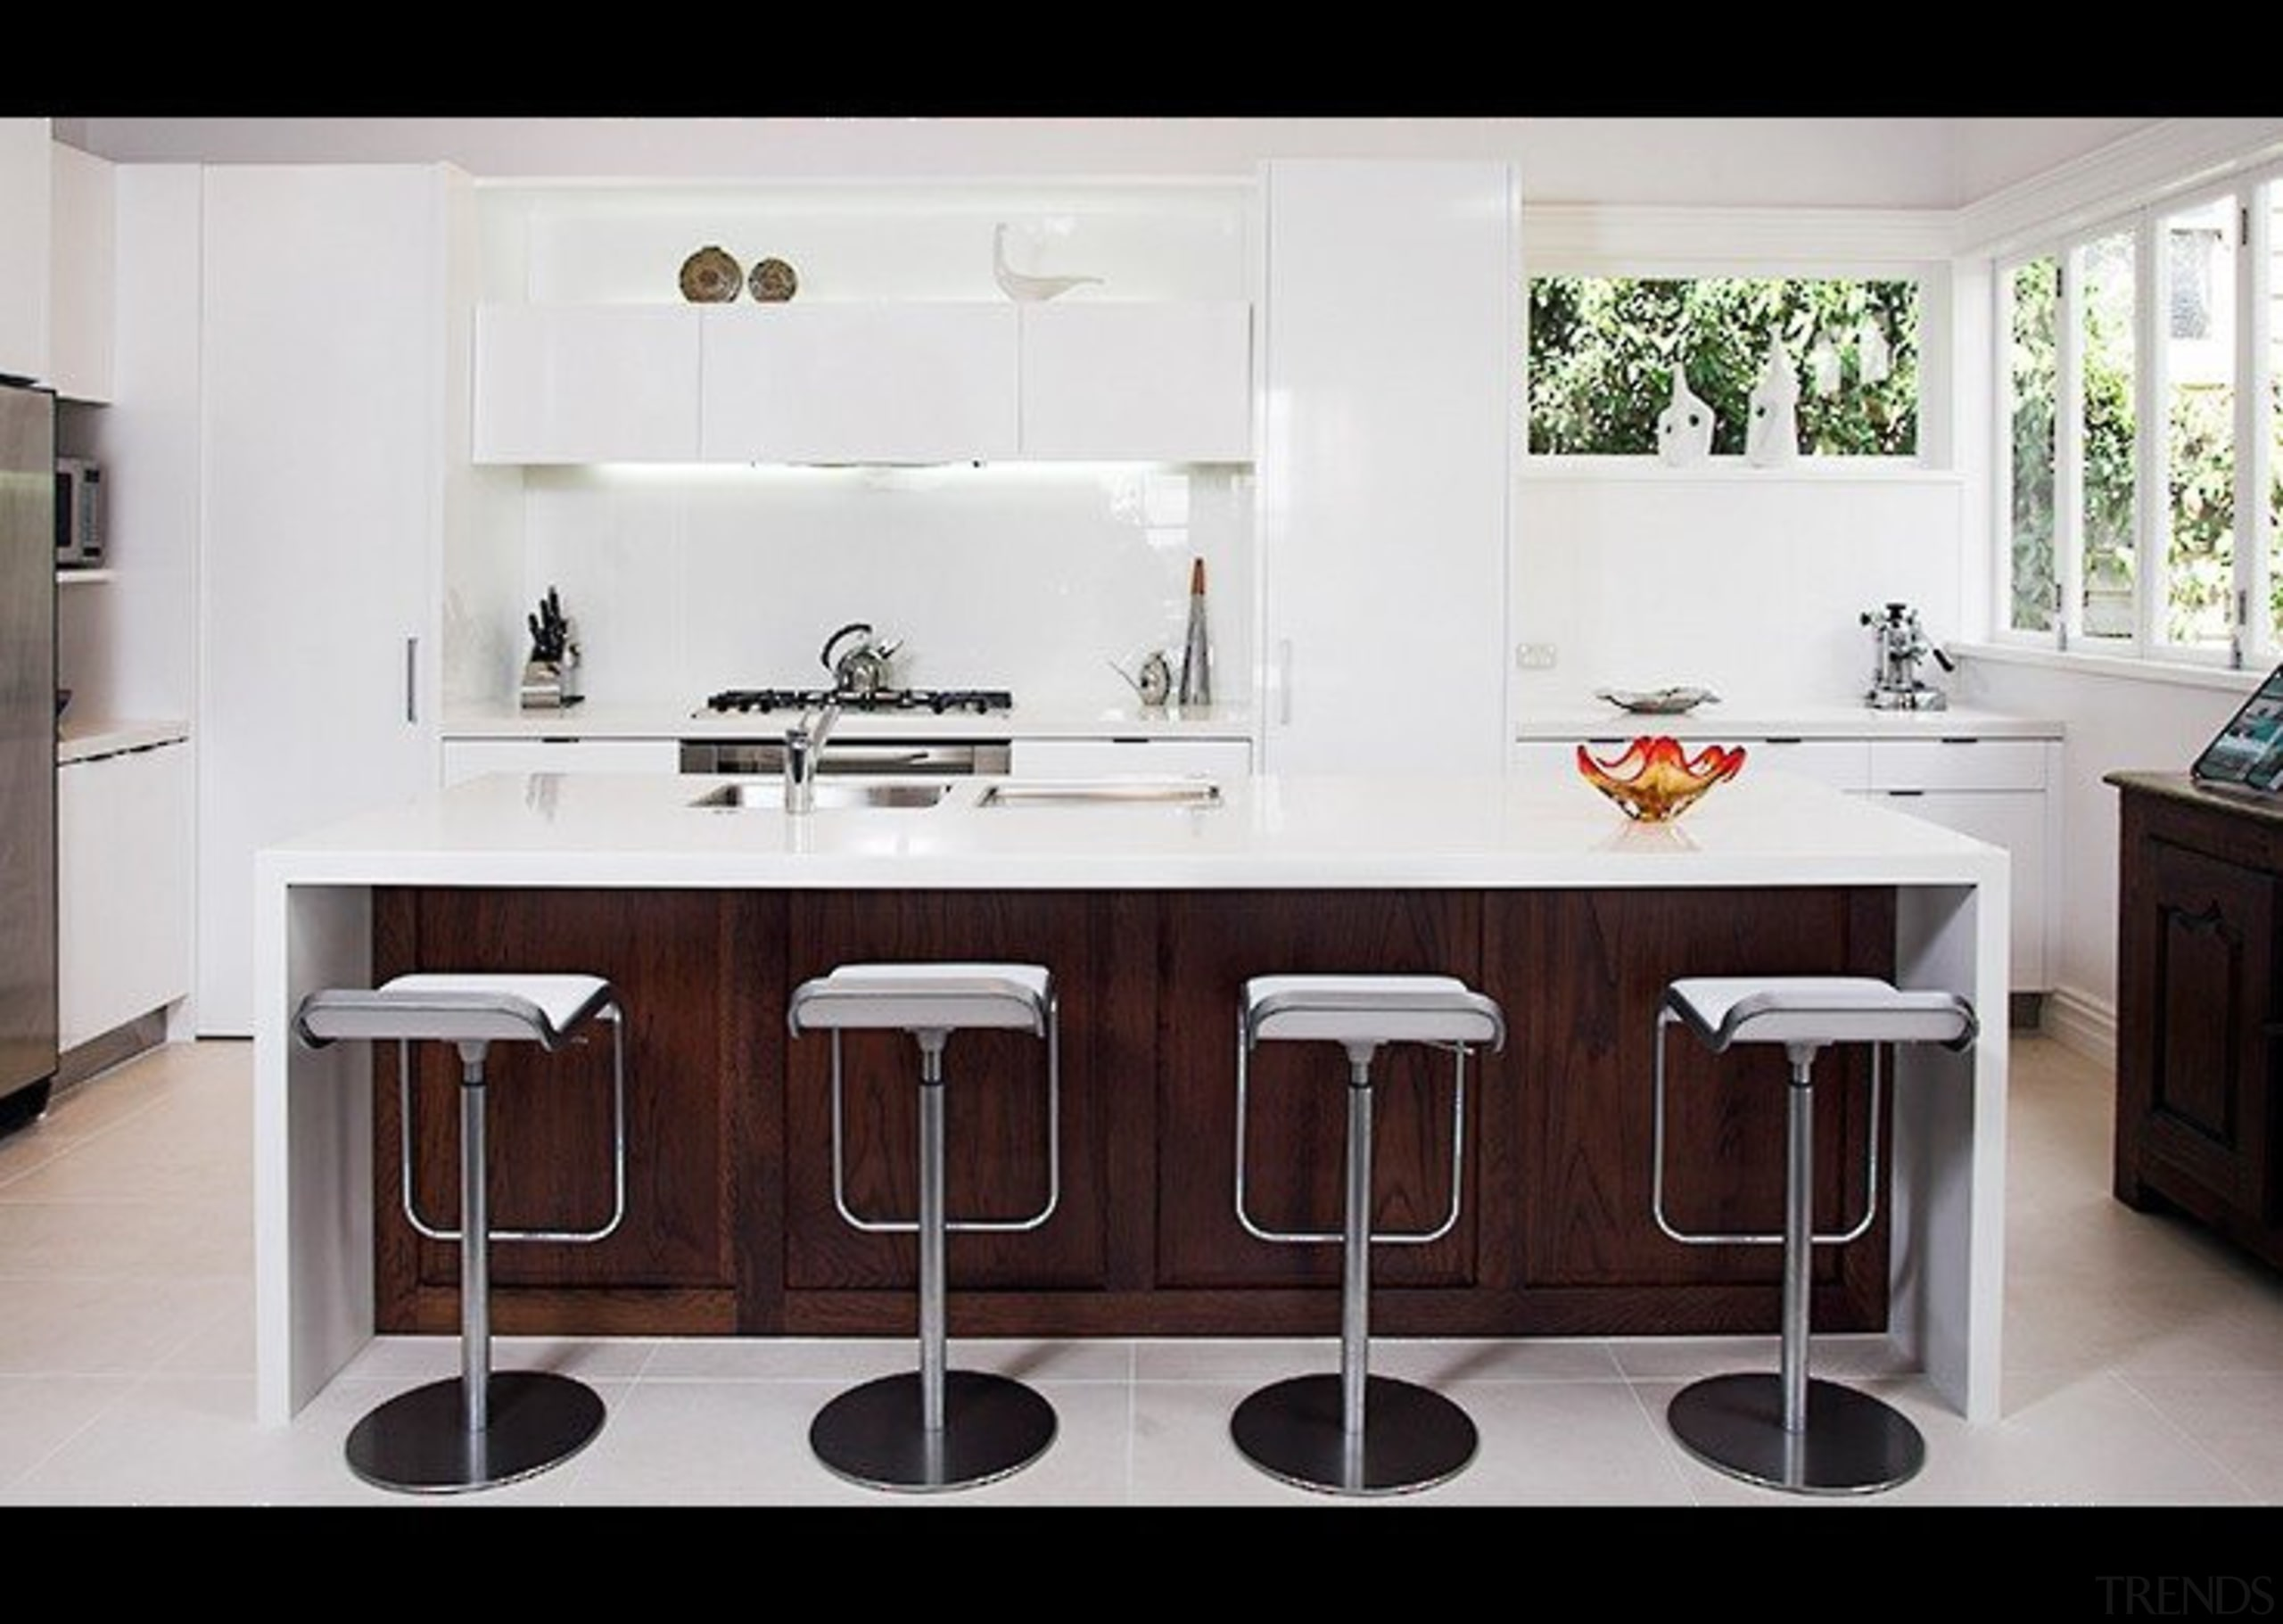 Timeless Classic - cabinetry | countertop | cuisine cabinetry, countertop, cuisine classique, furniture, interior design, kitchen, kitchen stove, product design, room, sink, white, black